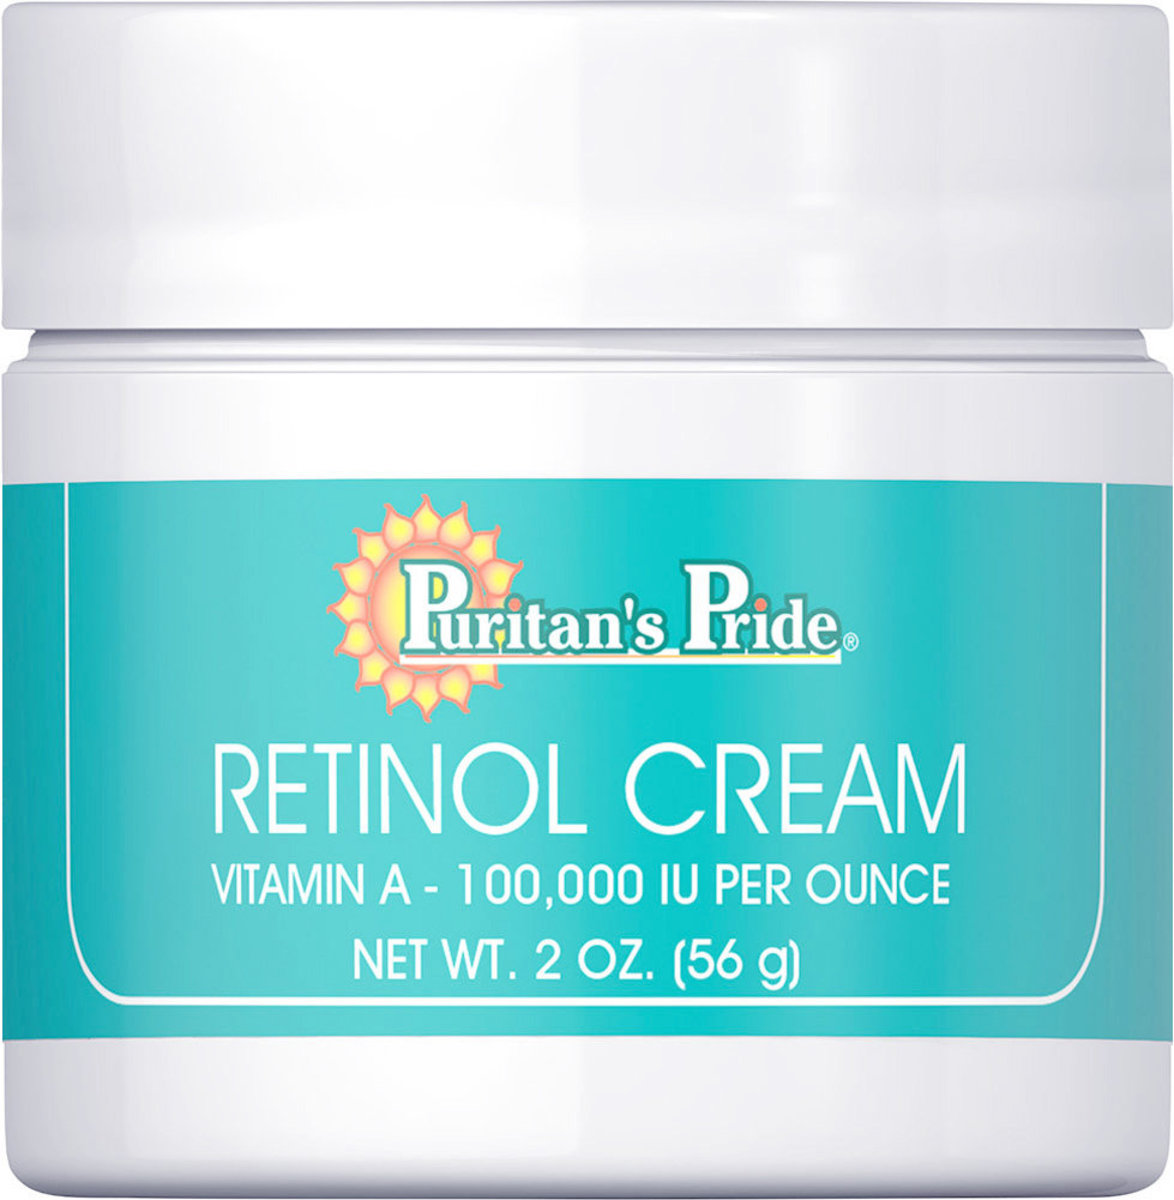 Retinol Cream (Vitamin A 100,000 IU Per Ounce)  [EXP  3/2021]